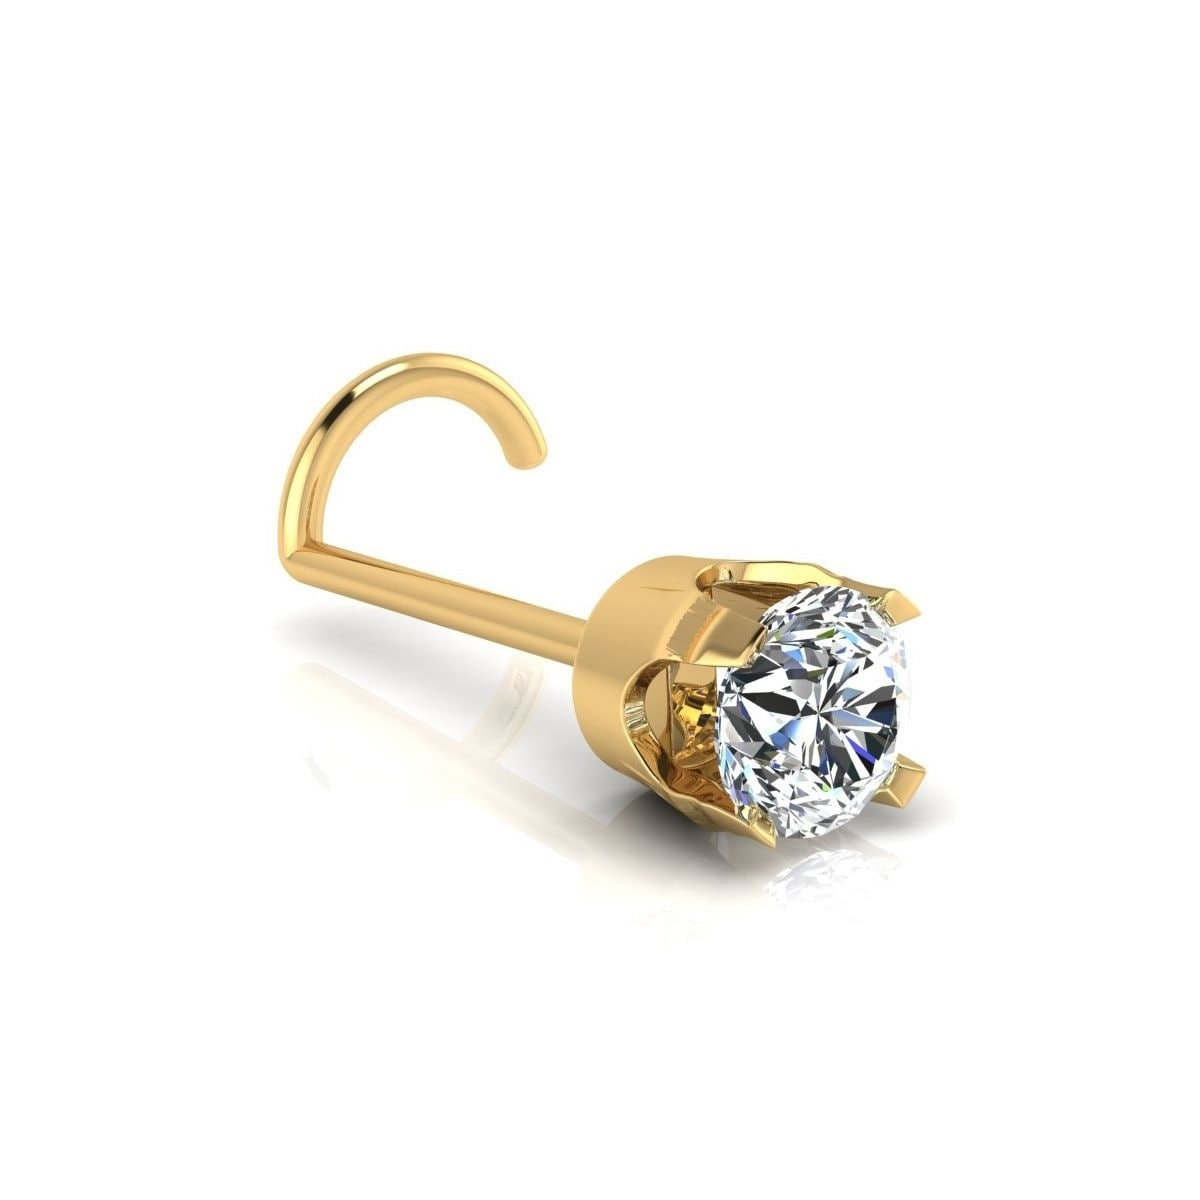 e2bff33ef Shop 0.03ct 2mm Diamond Stud Nose Ring In 14K Yellow Gold - On Sale - Free  Shipping Today - Overstock - 22814800